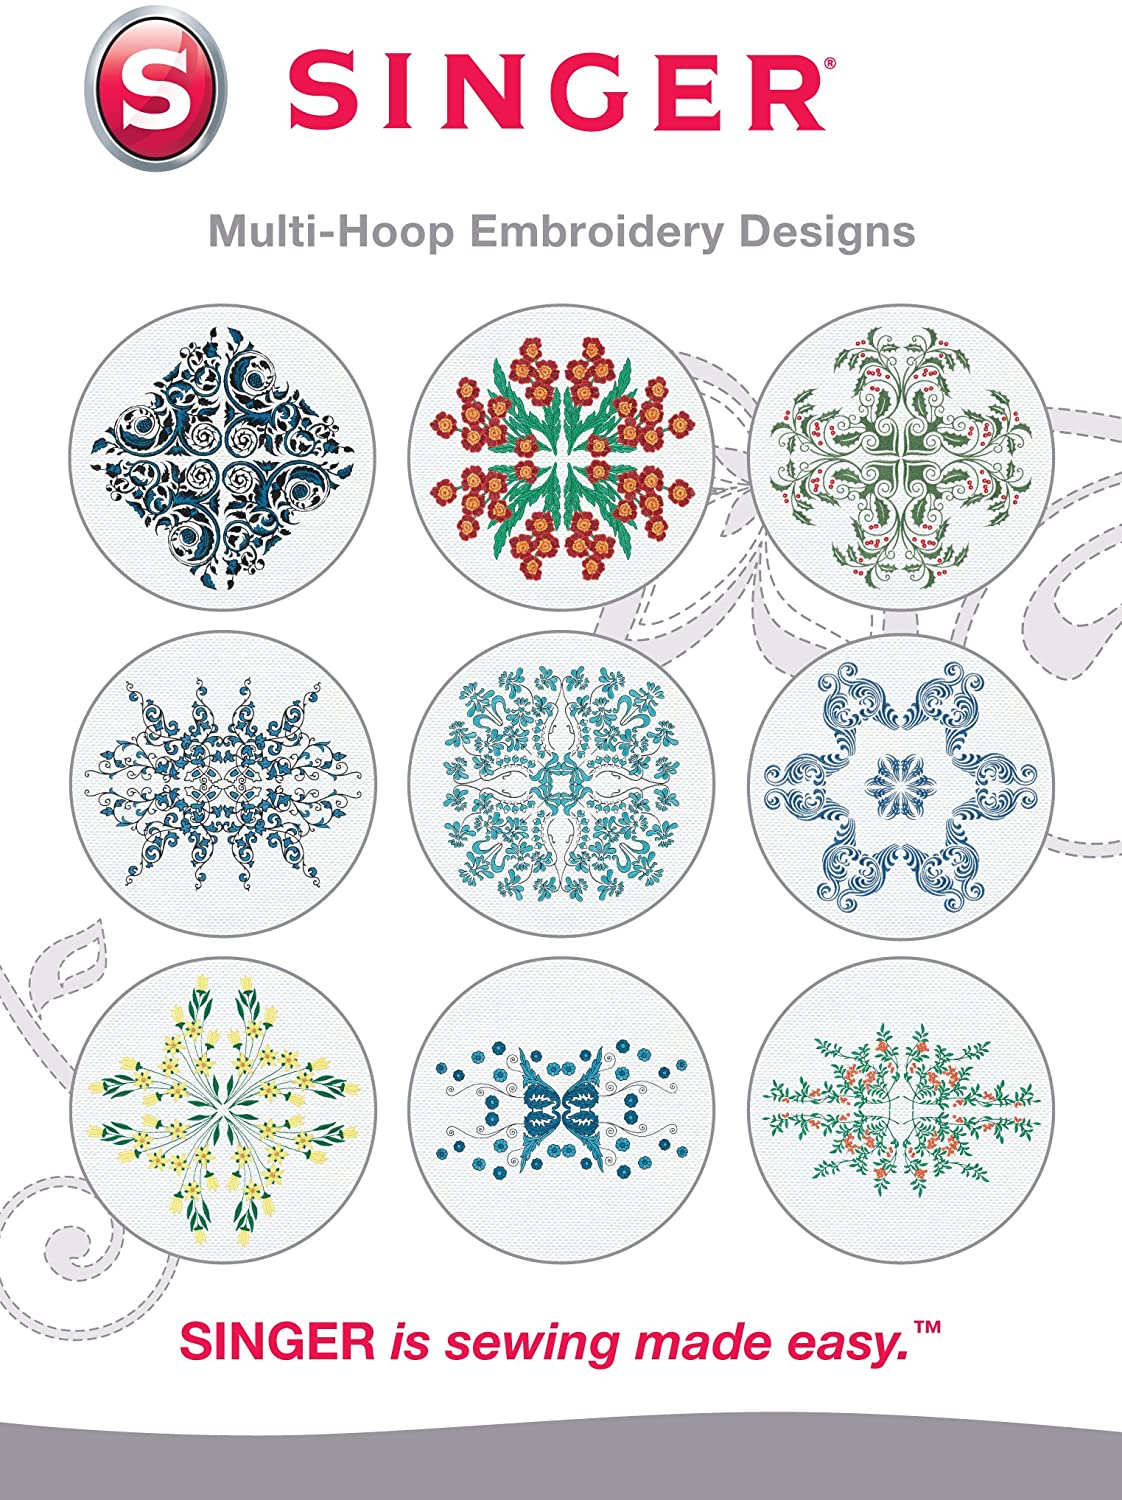 SINGER | Multi-Hoop Embroidery Designs CD for Futura with 10 Designs for SINGER Embroidery Machines - Sewing Made Easy